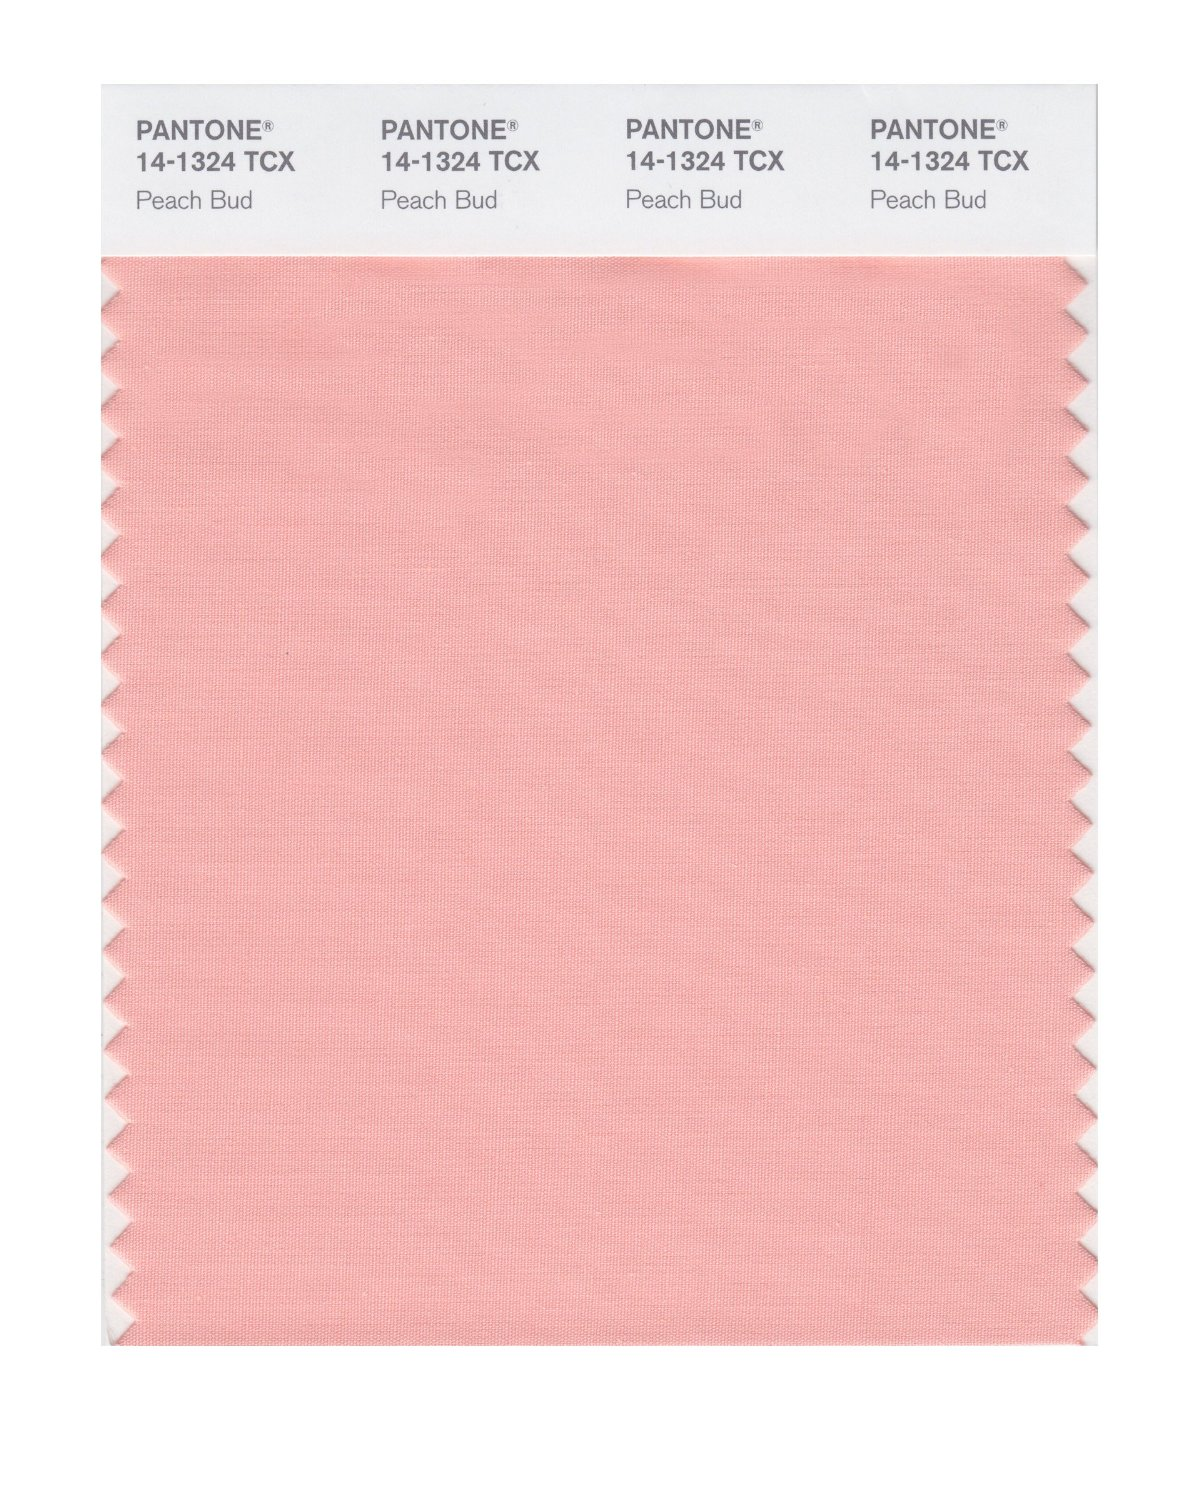 Pantone Smart Swatch 14-1324 Peach Bud